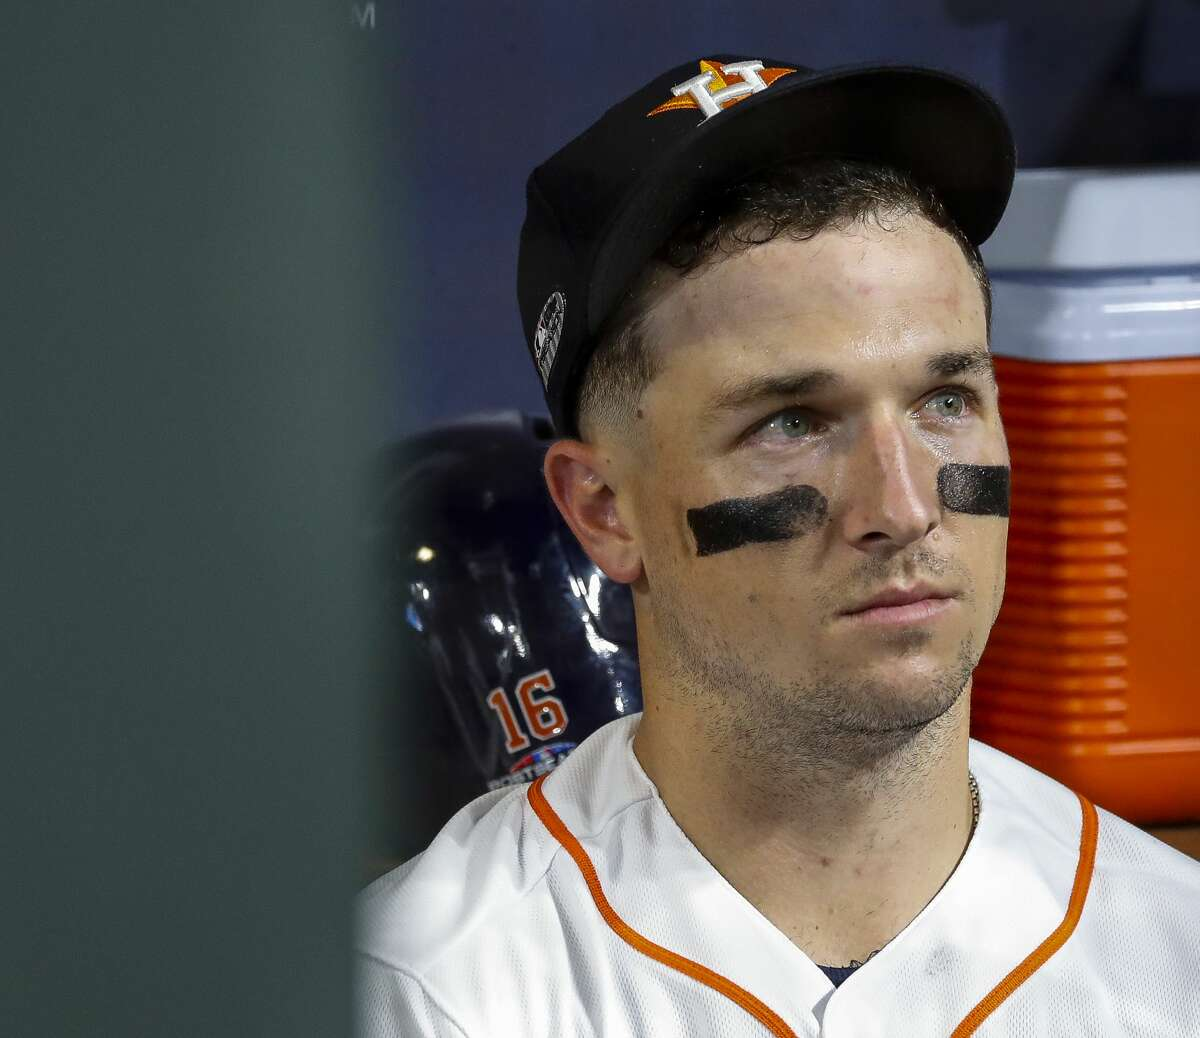 Houston Astros Alex Bregman (2) reacts from the dugout at the end of Game 5 of the American League Championship Series at Minute Maid Park on Thursday, Oct. 18, 2018, in Houston.